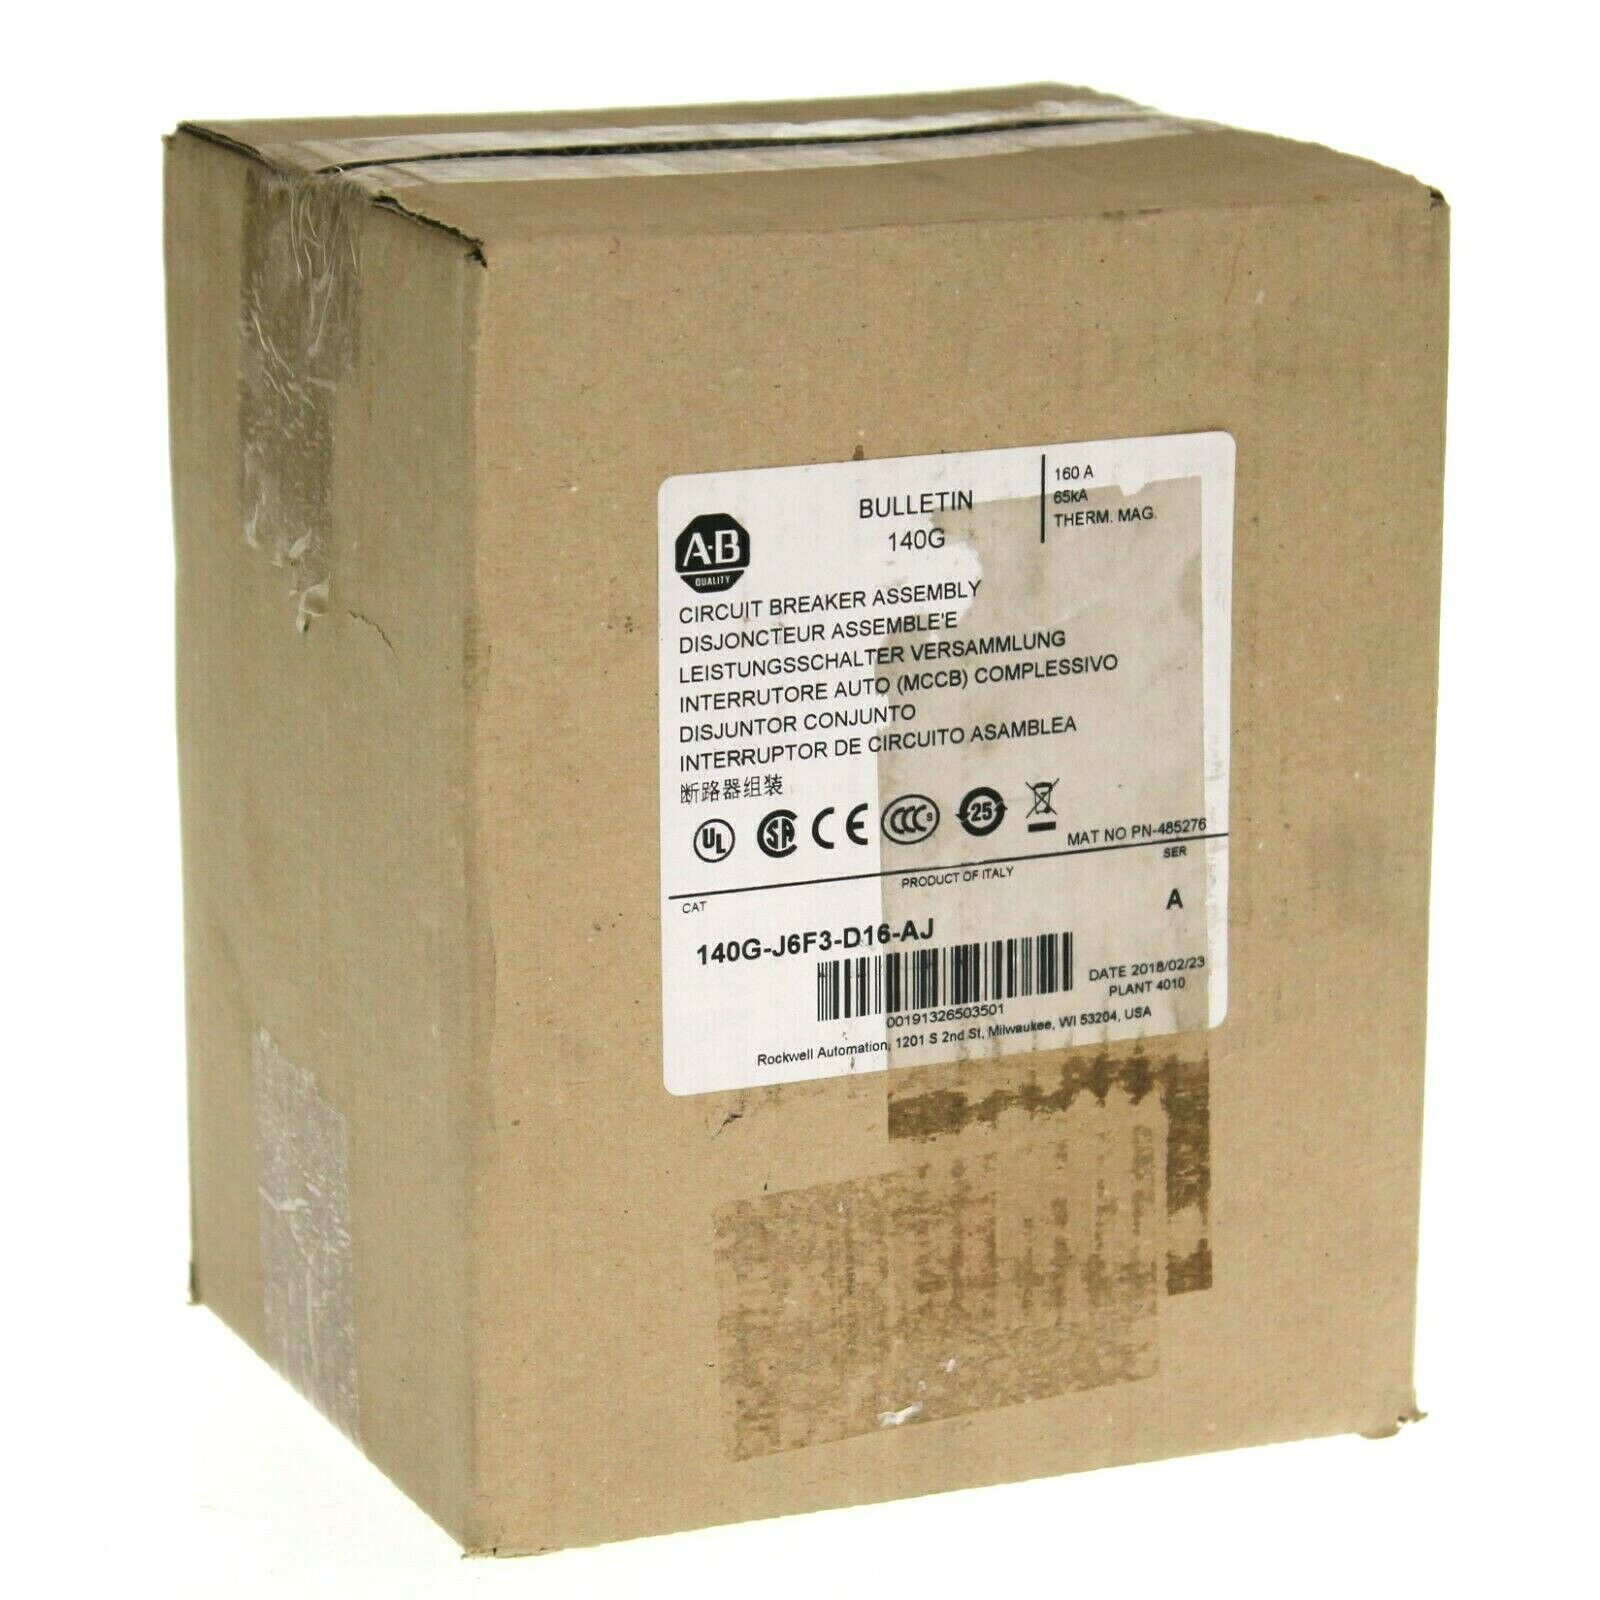 New Sealed 2018 Allen Bradley 140G-J6F3-D16-AJ /A Circuit Breaker Assembly